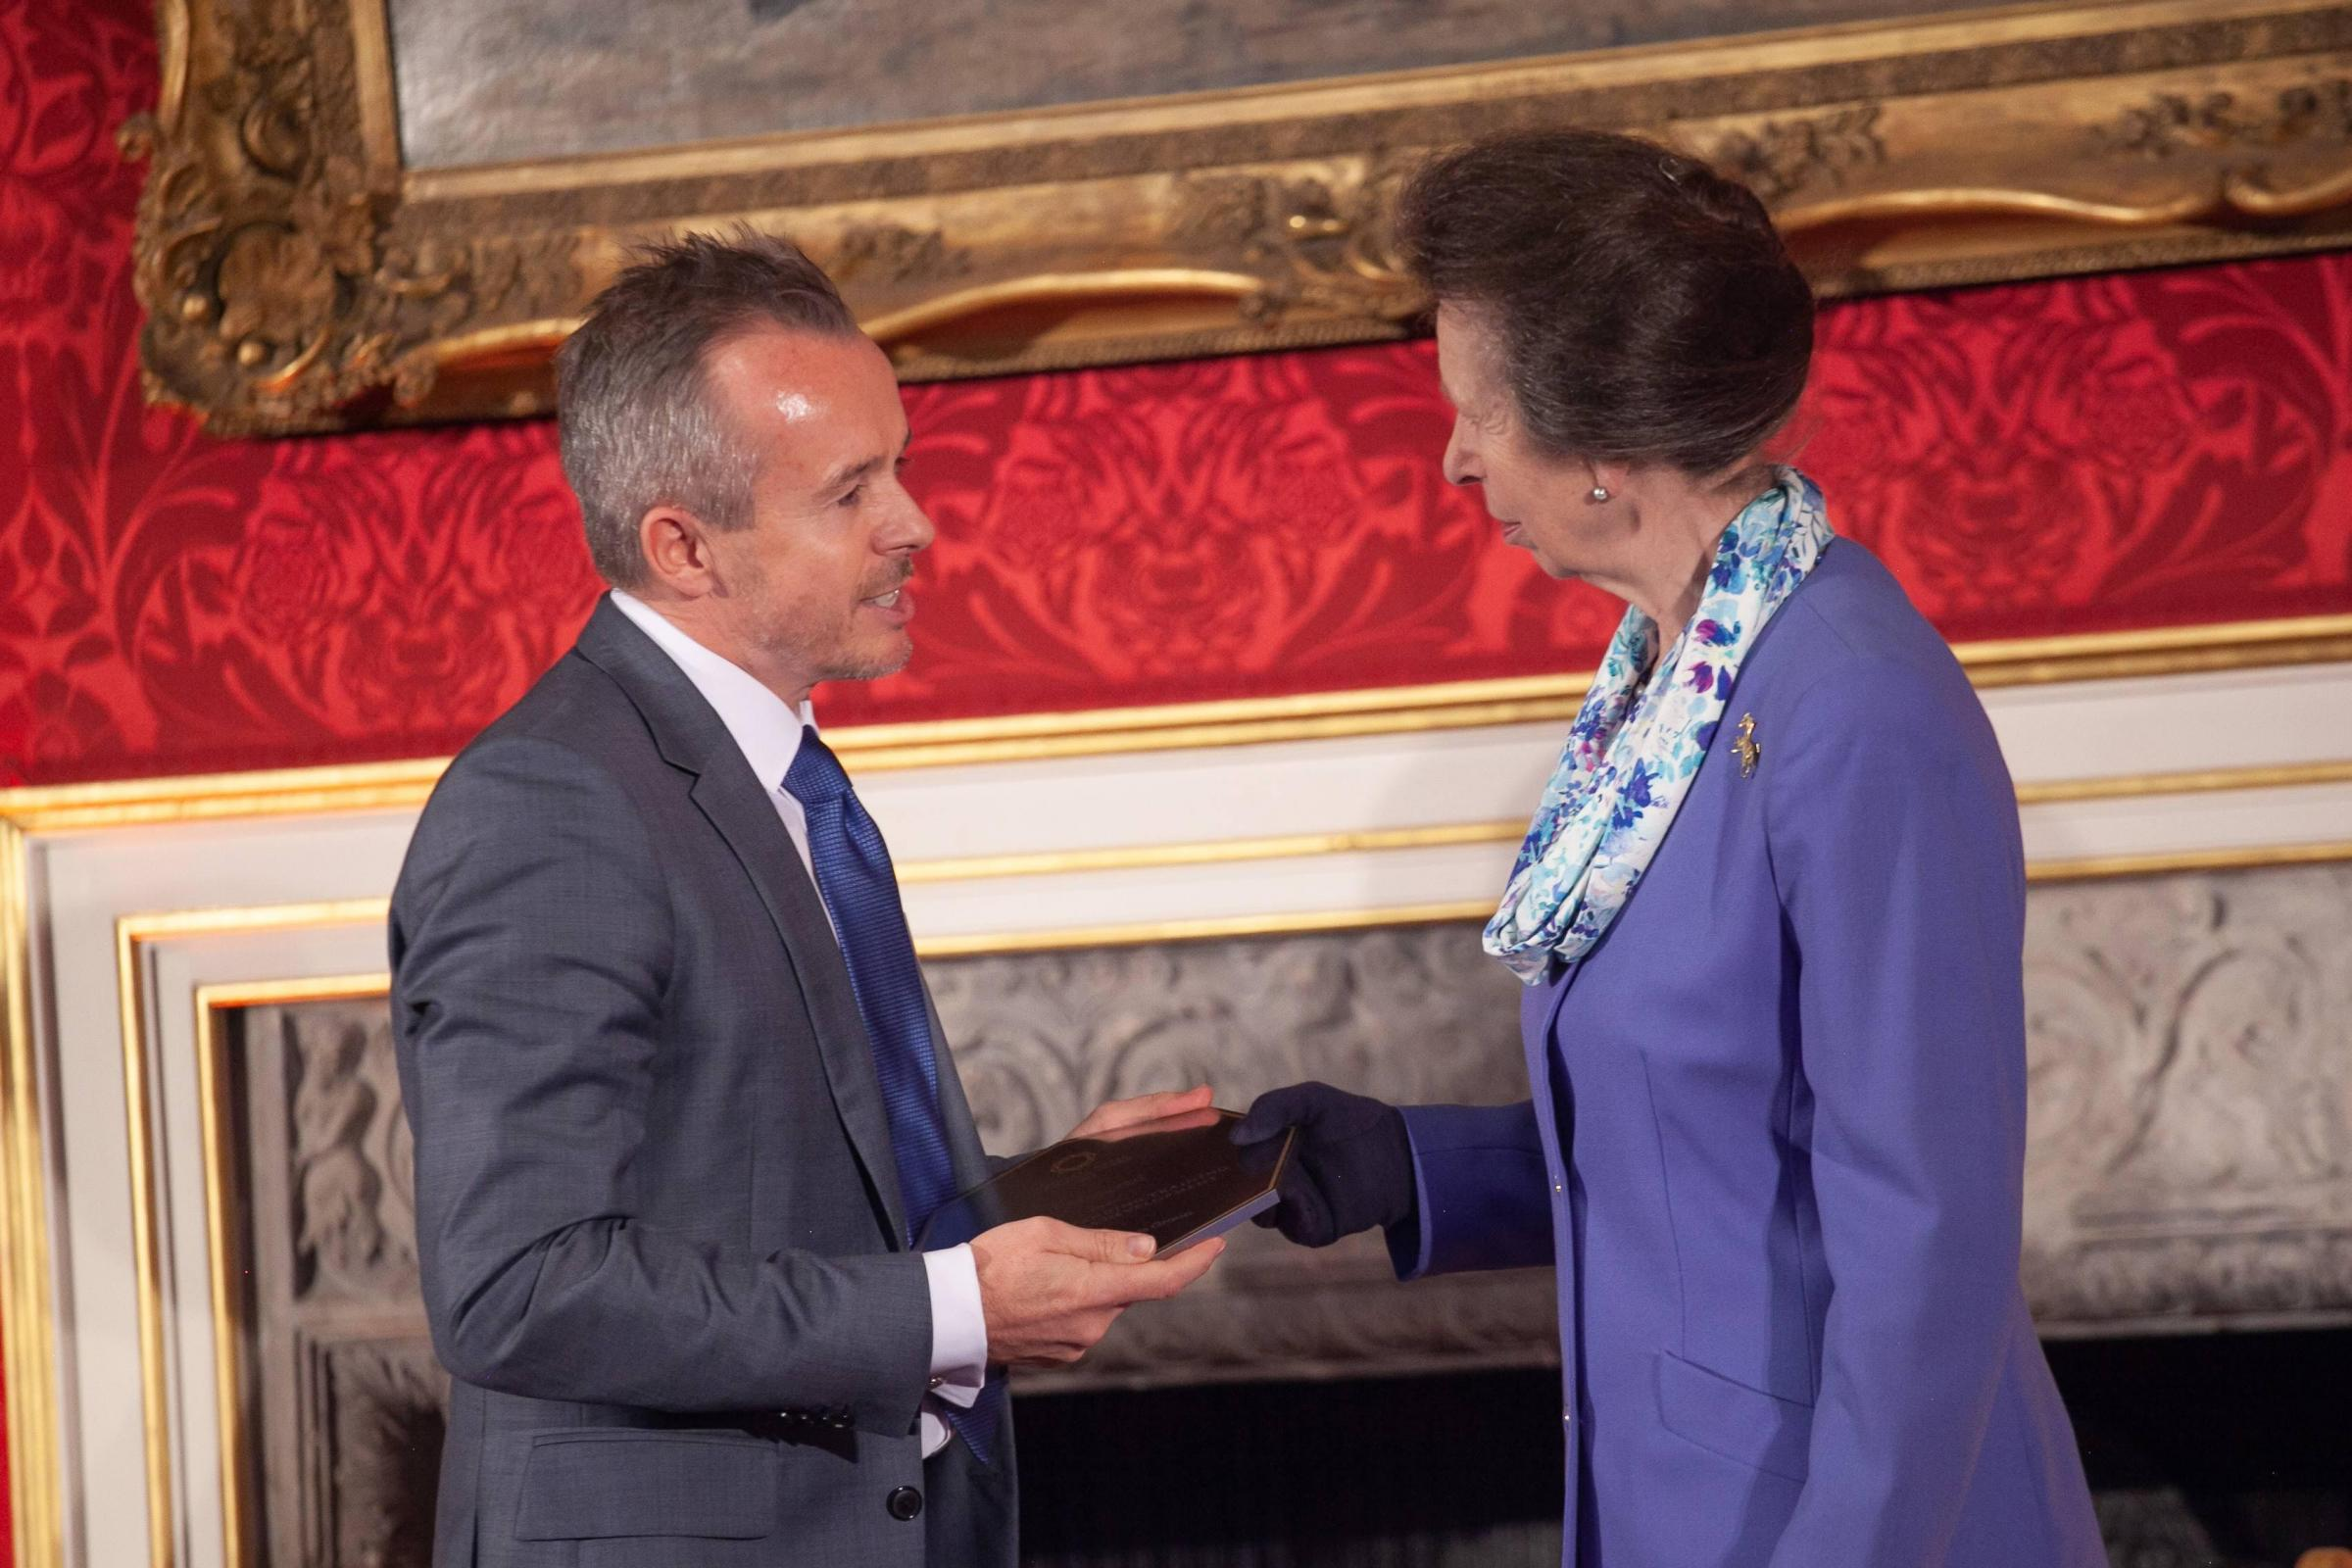 Princess Anne prsents Reassured with the award